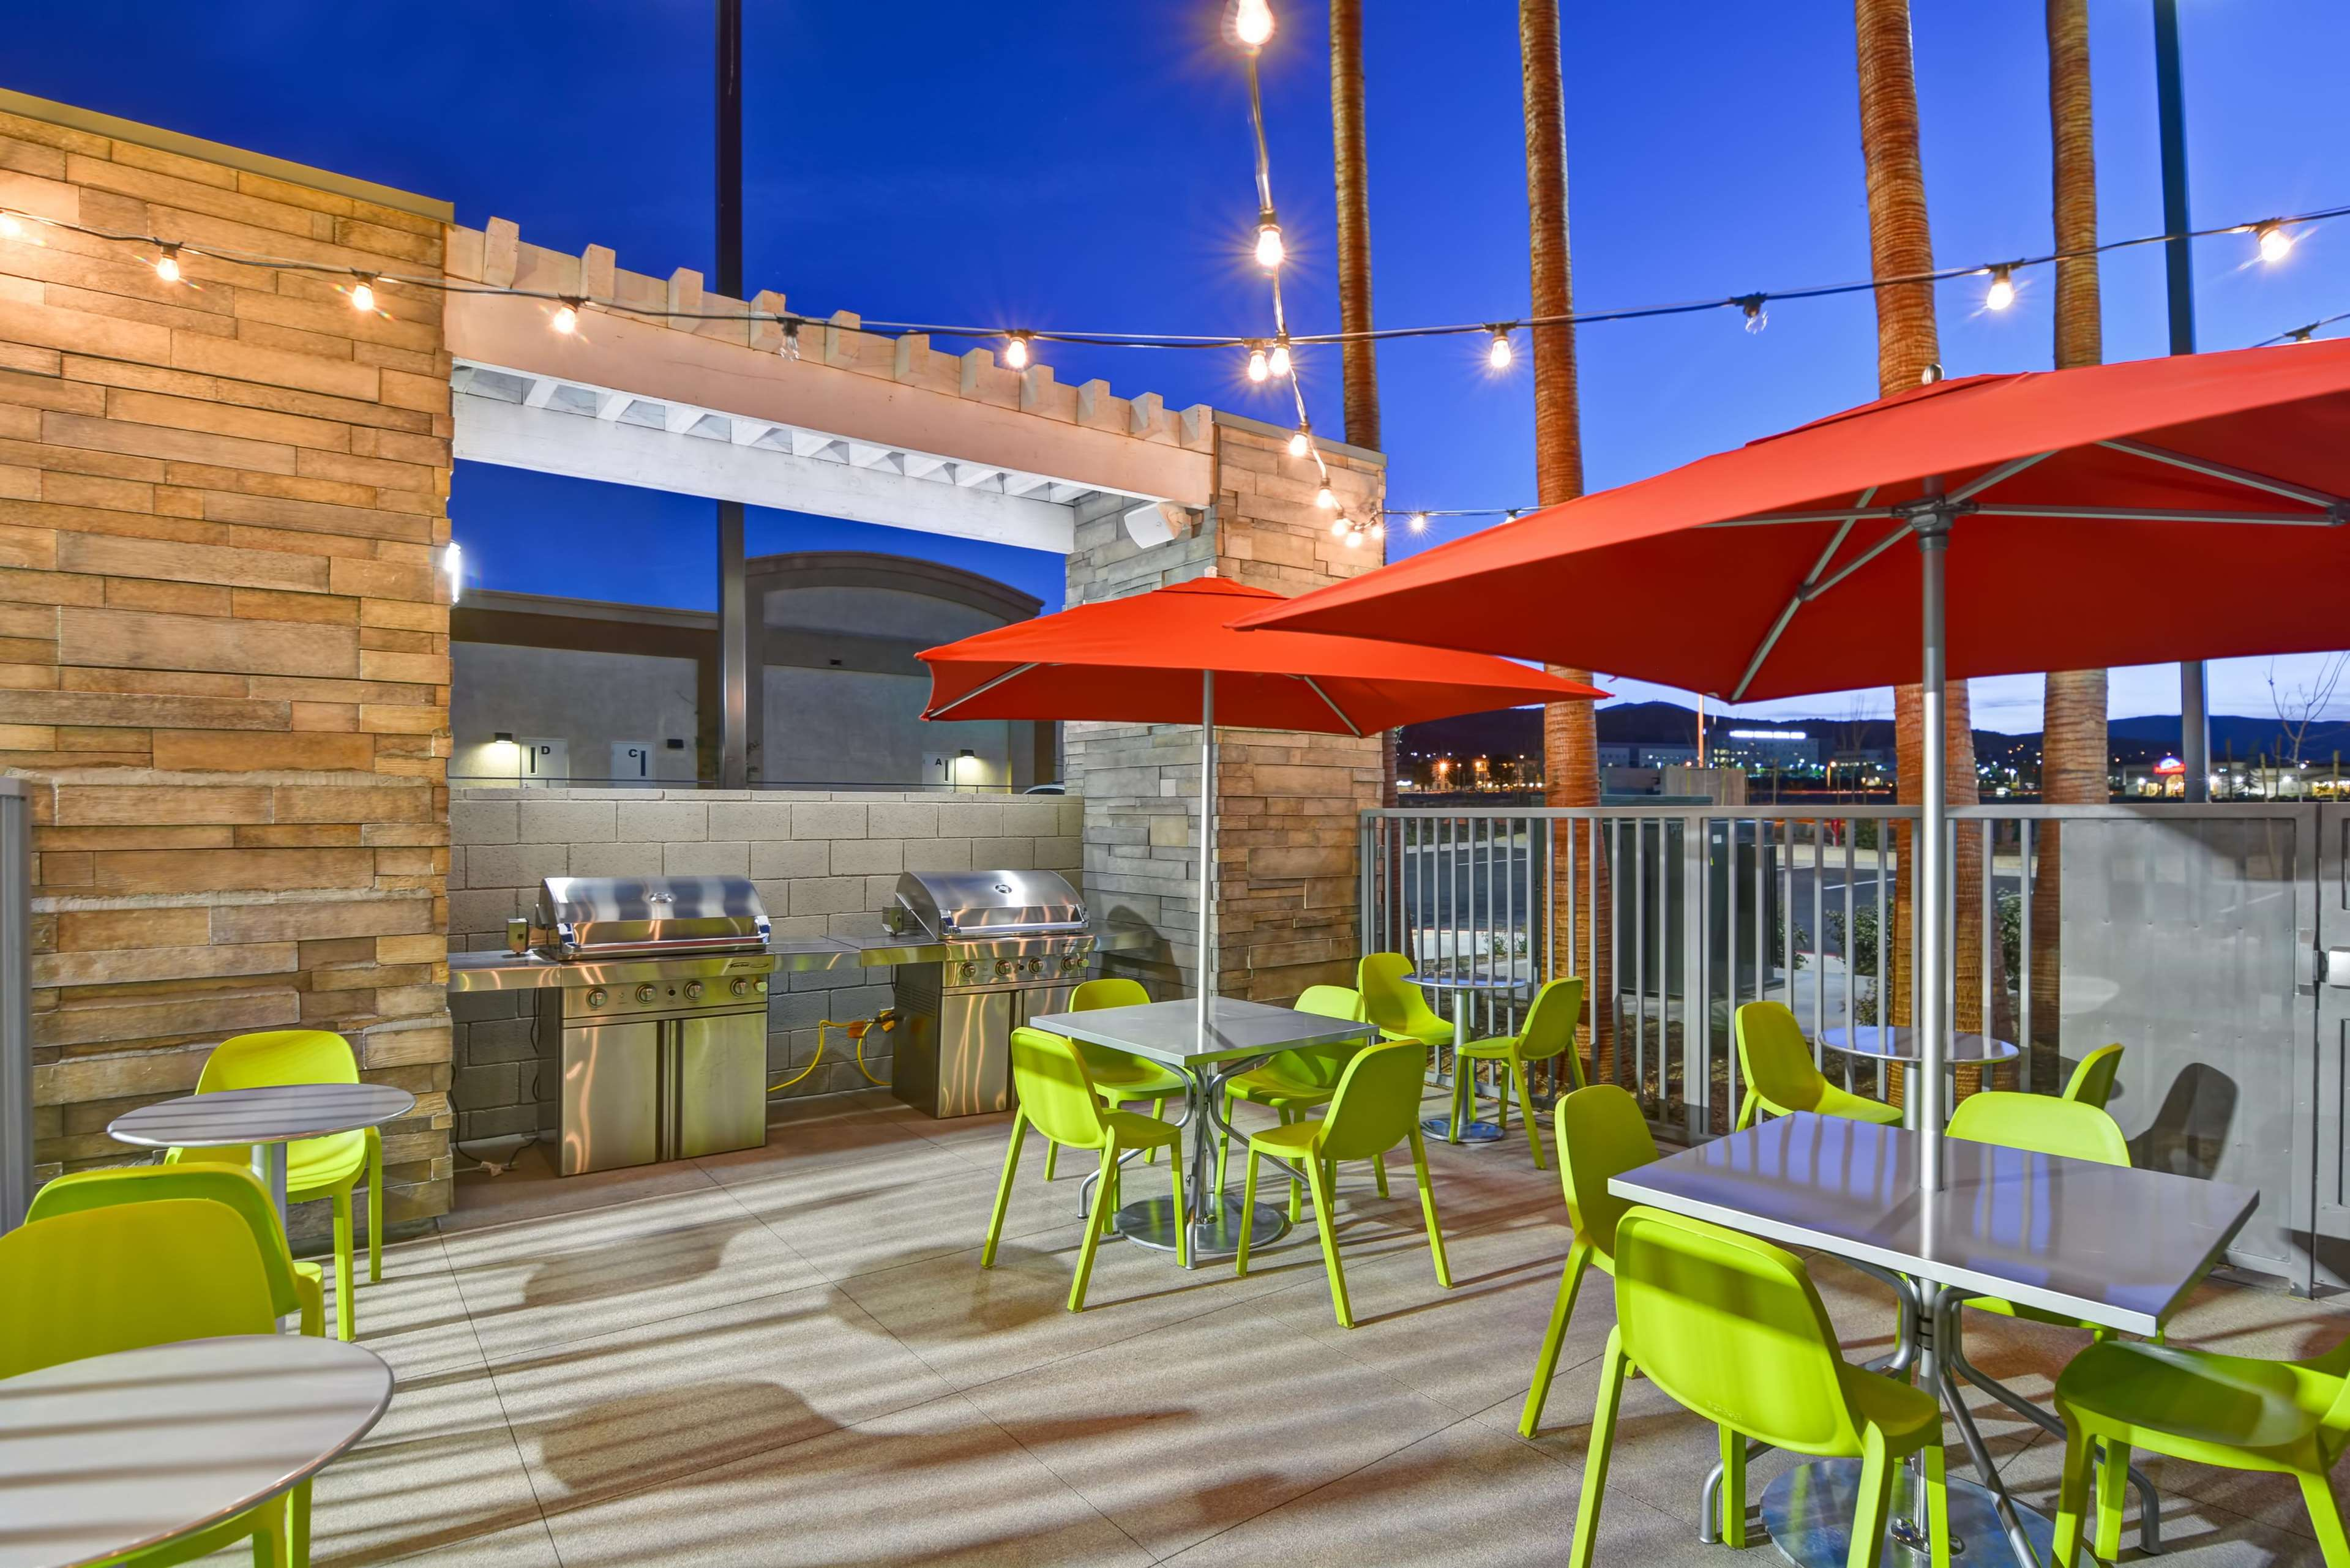 Home2 Suites by Hilton Palmdale image 25